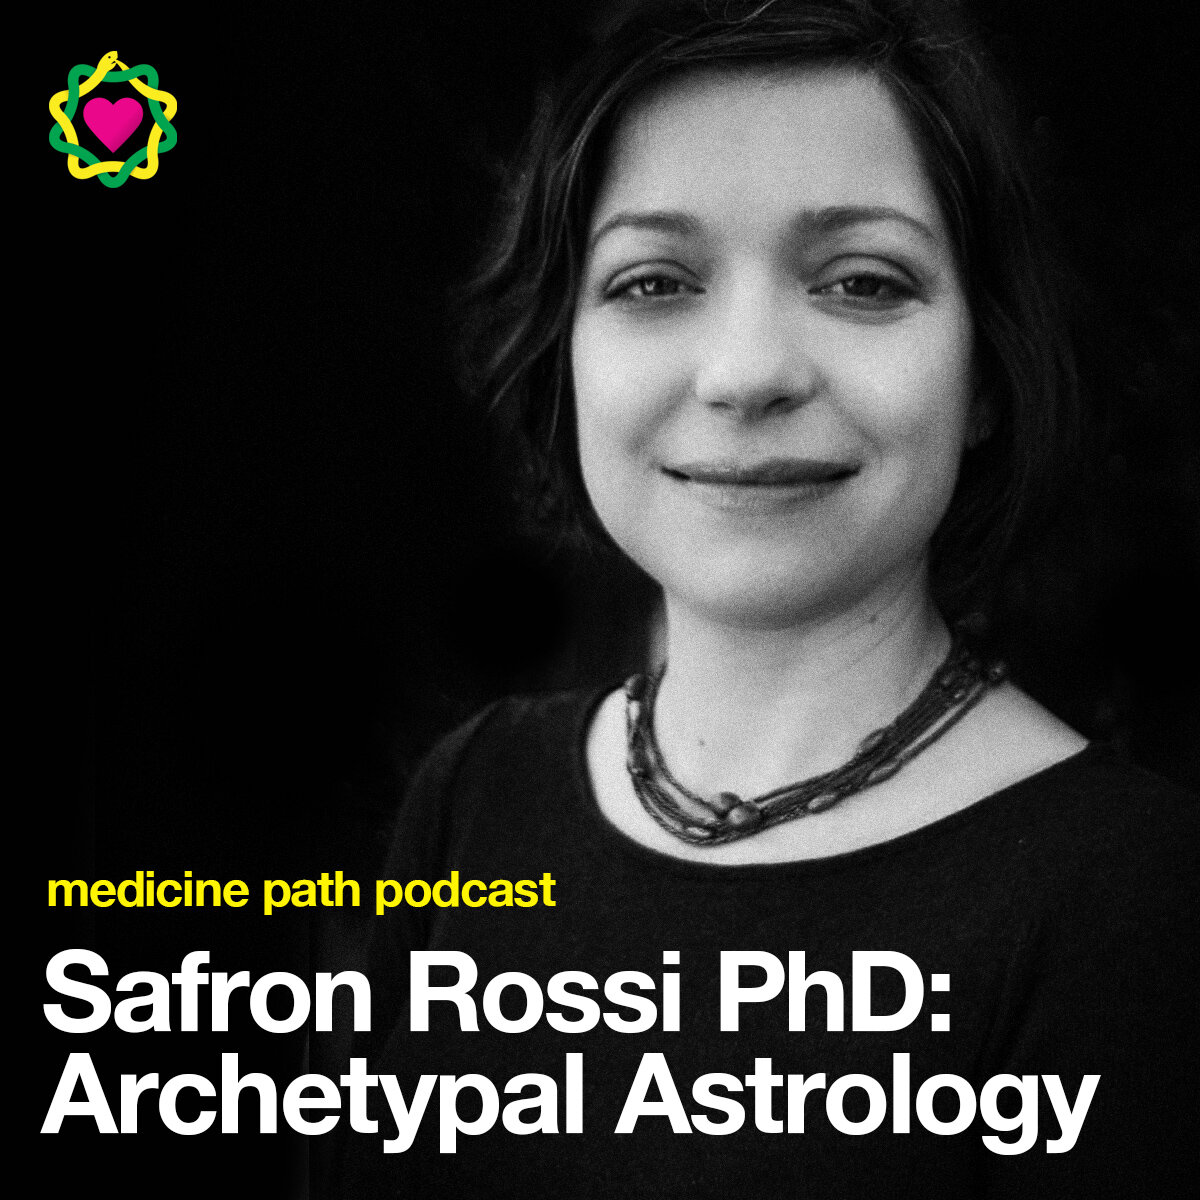 MPP71 Safron Rossi PhD: Archetypal Astrology